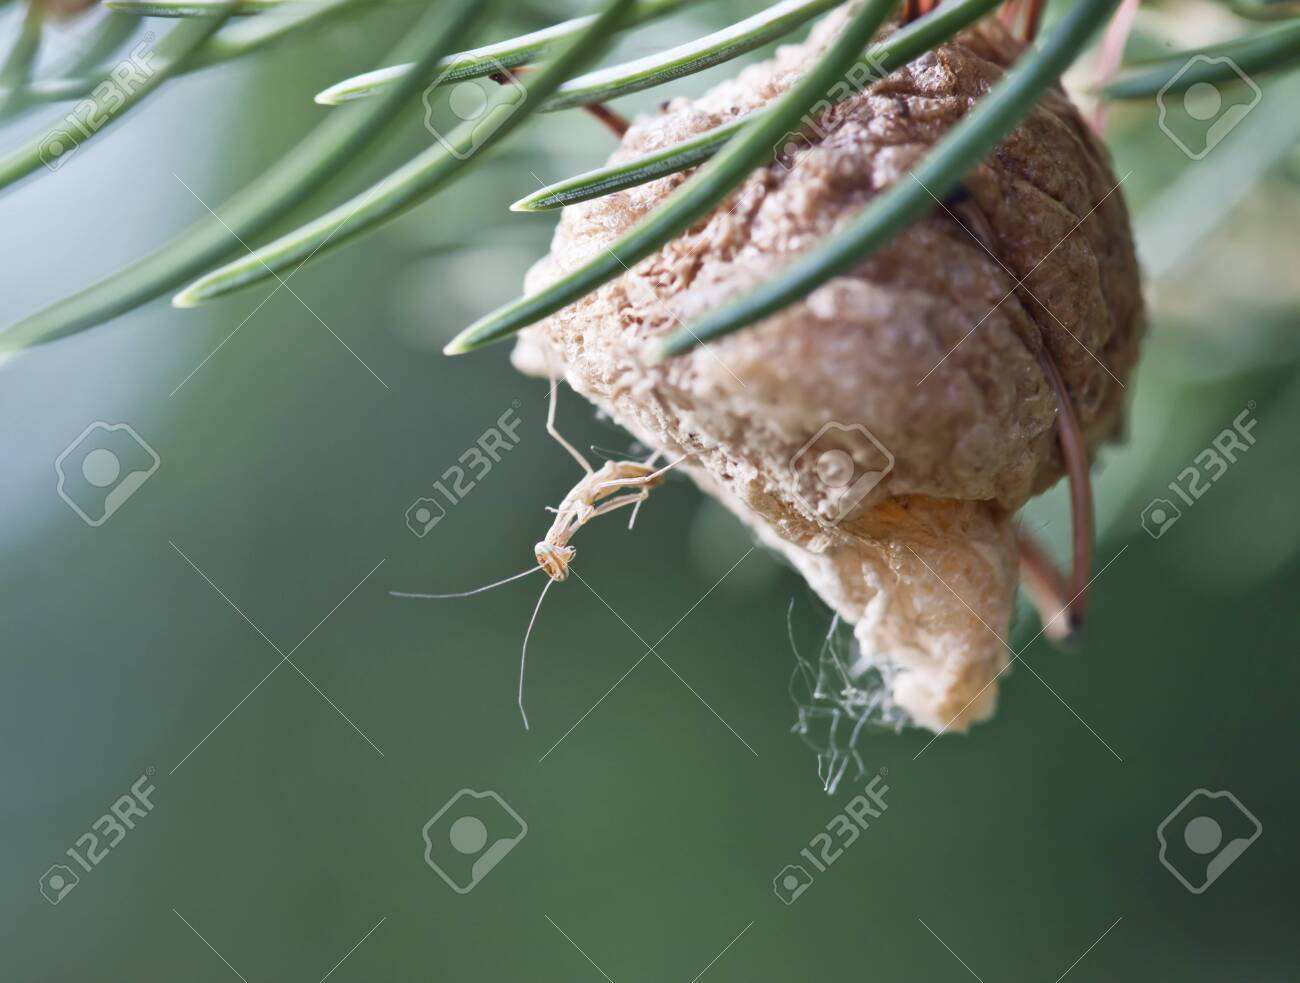 Newly Hatched Baby Praying Mantis On Its Nest Stock Photo Picture